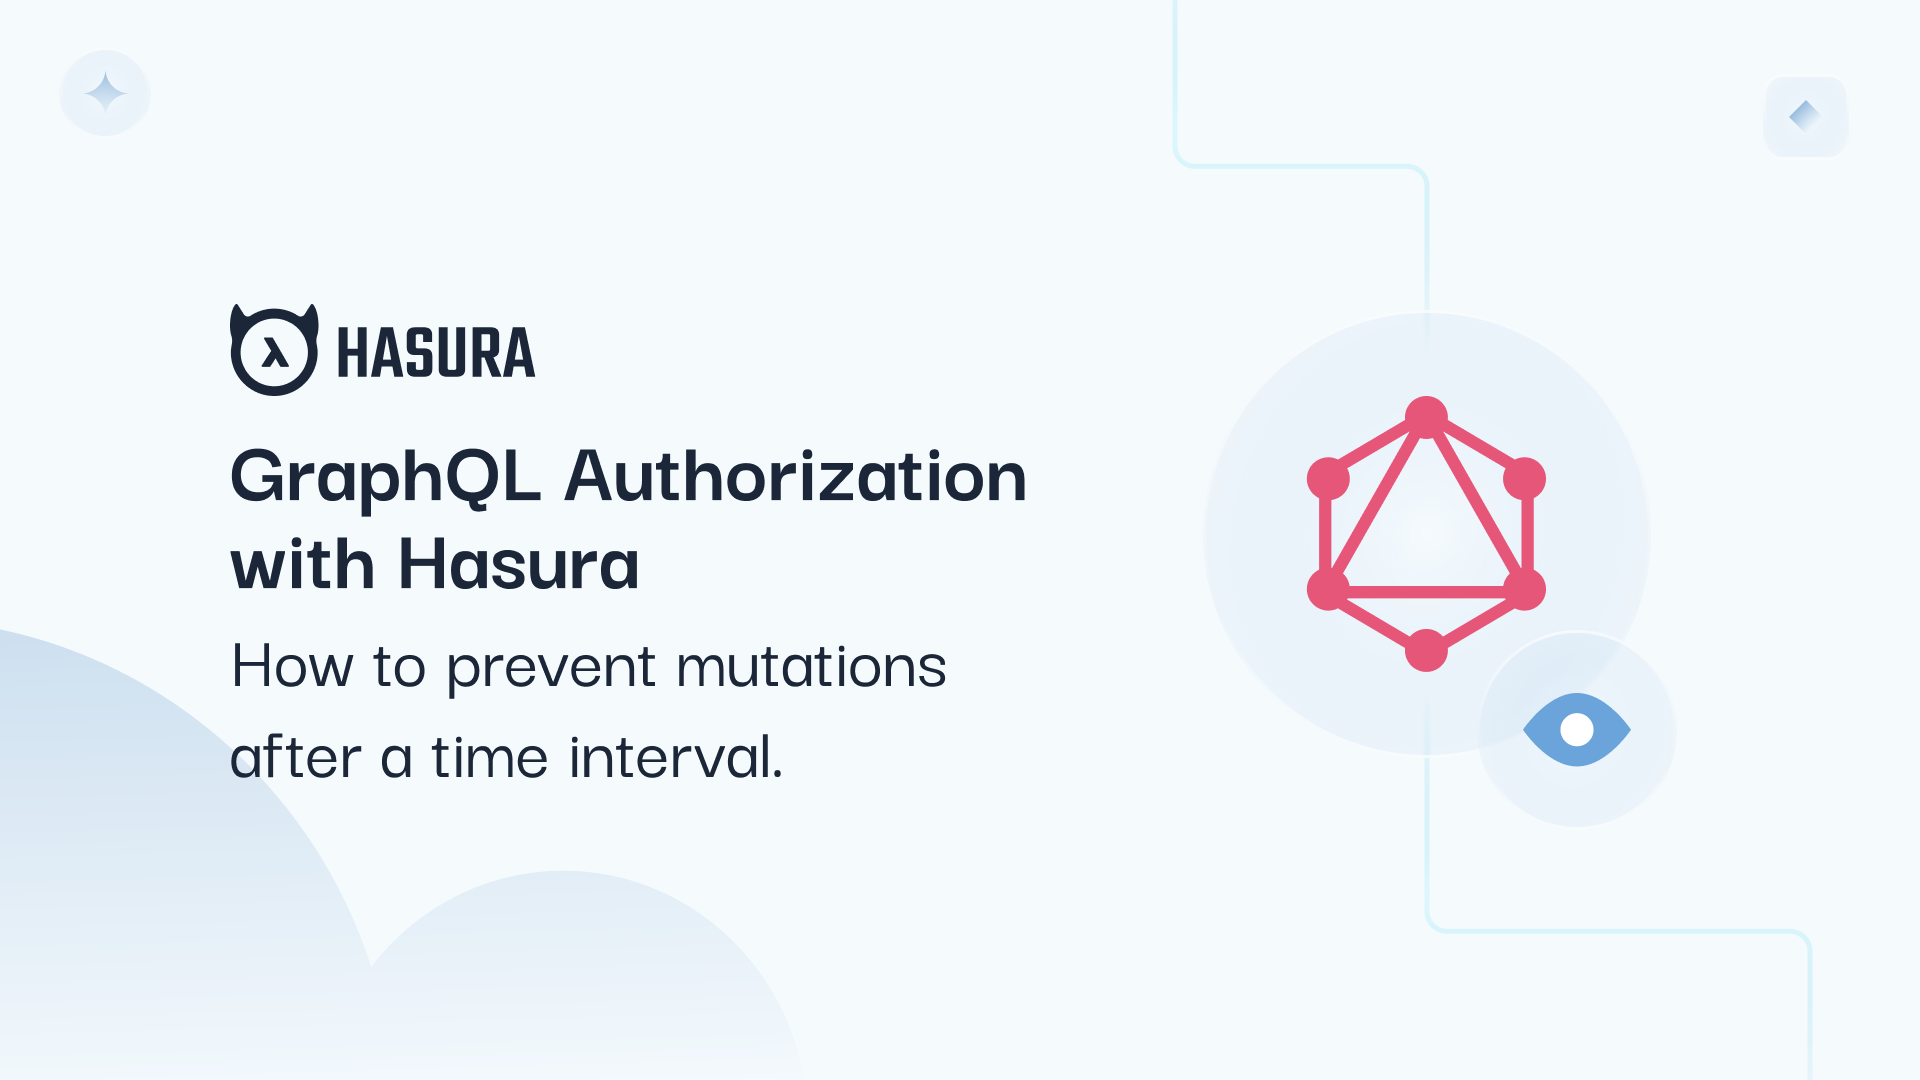 GraphQL Authorization with Hasura: How to prevent mutations after a time interval